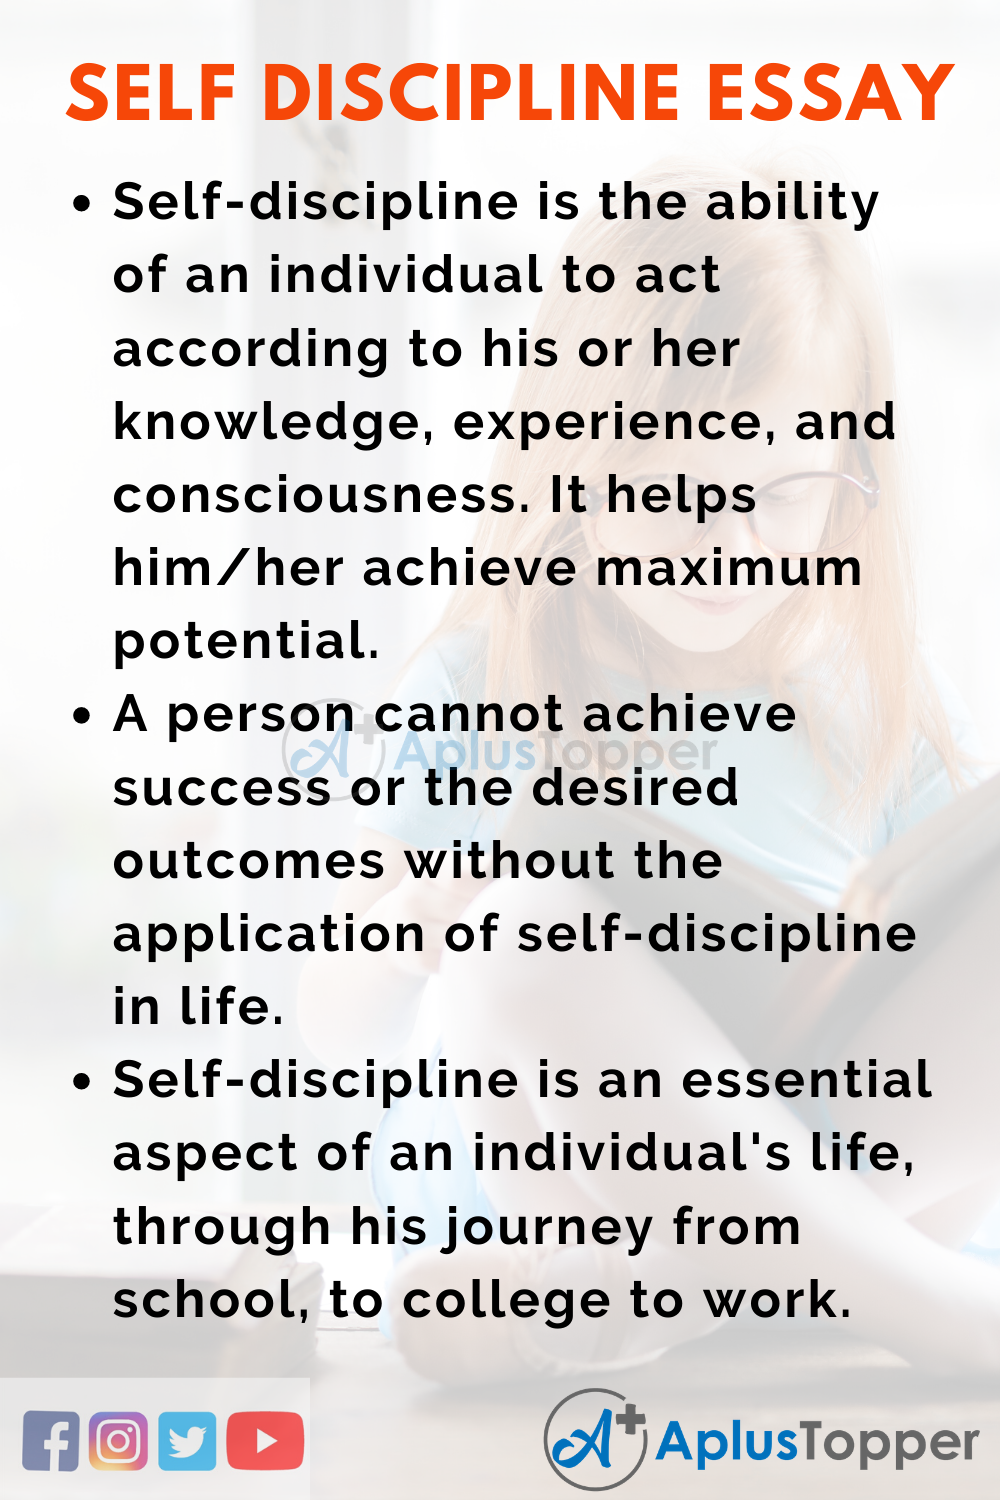 Self Discipline essay and its importance